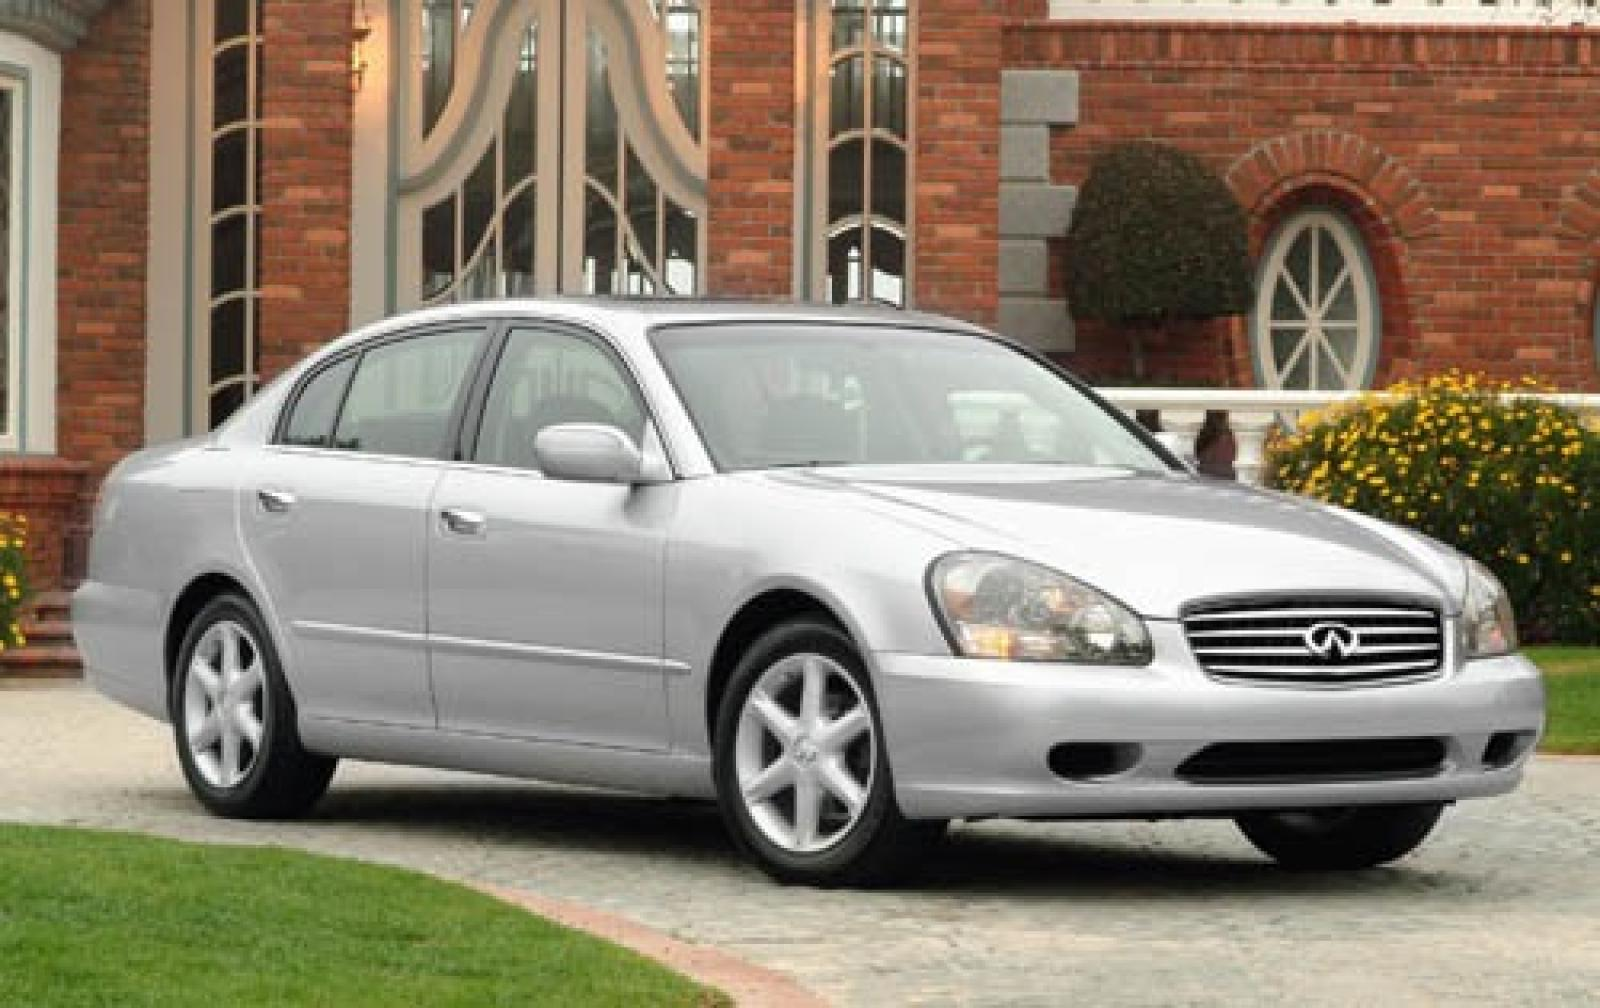 2005 infiniti q45 information and photos zombiedrive infiniti gallery vanachro Choice Image